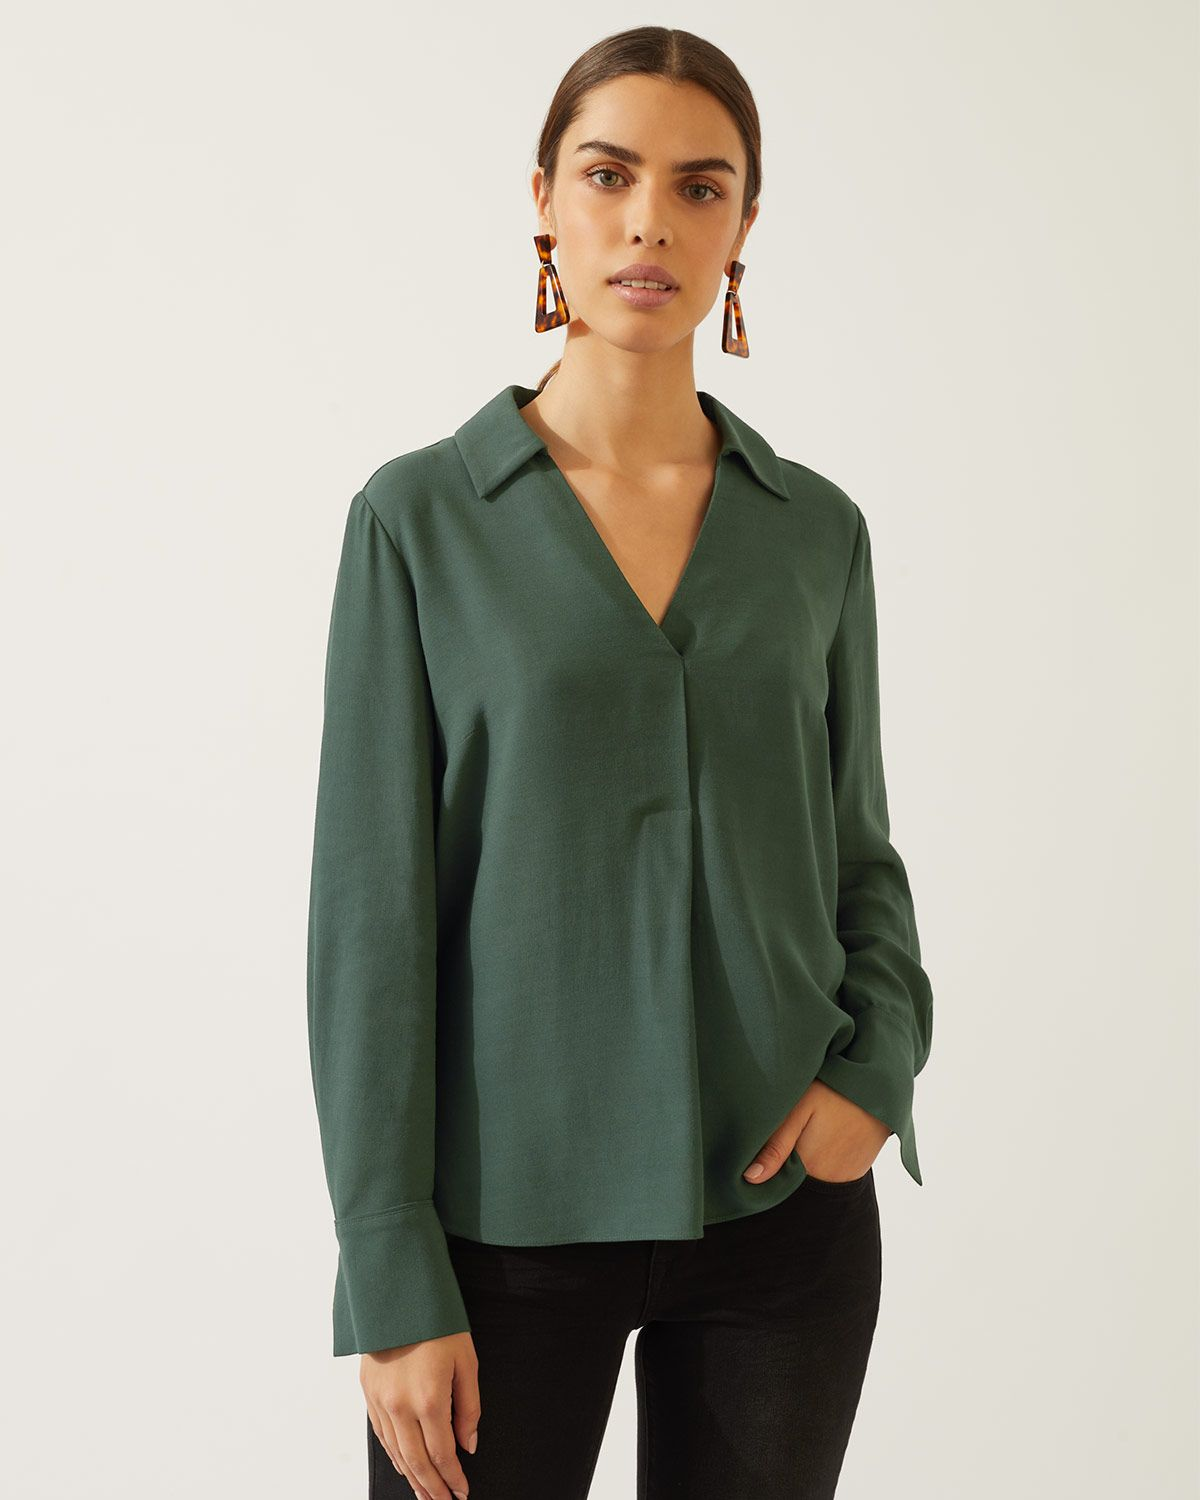 Wing Collared Top